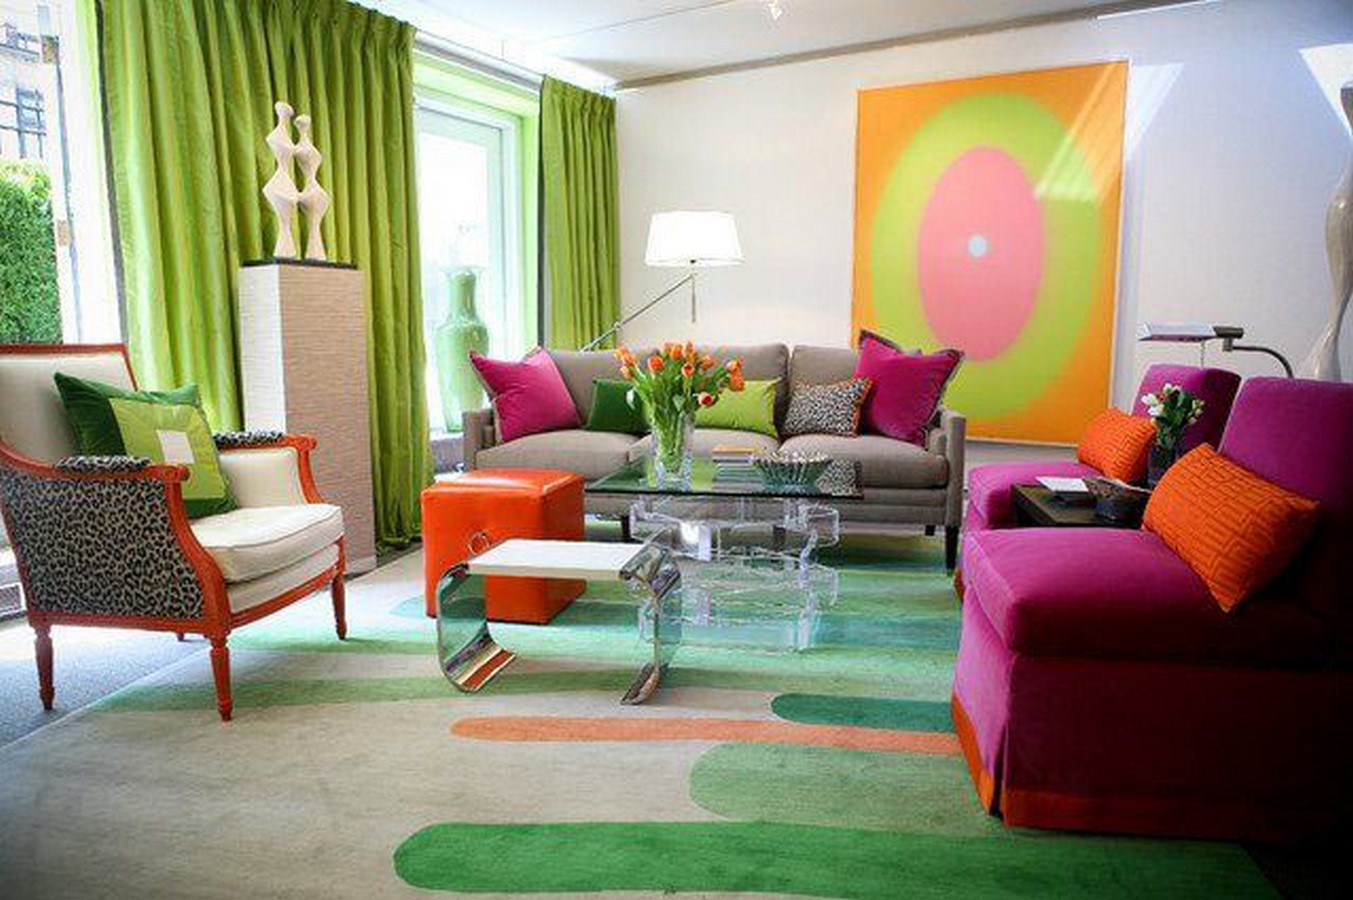 30 Examples of split complementary color scheme in Interiors - Sheet8